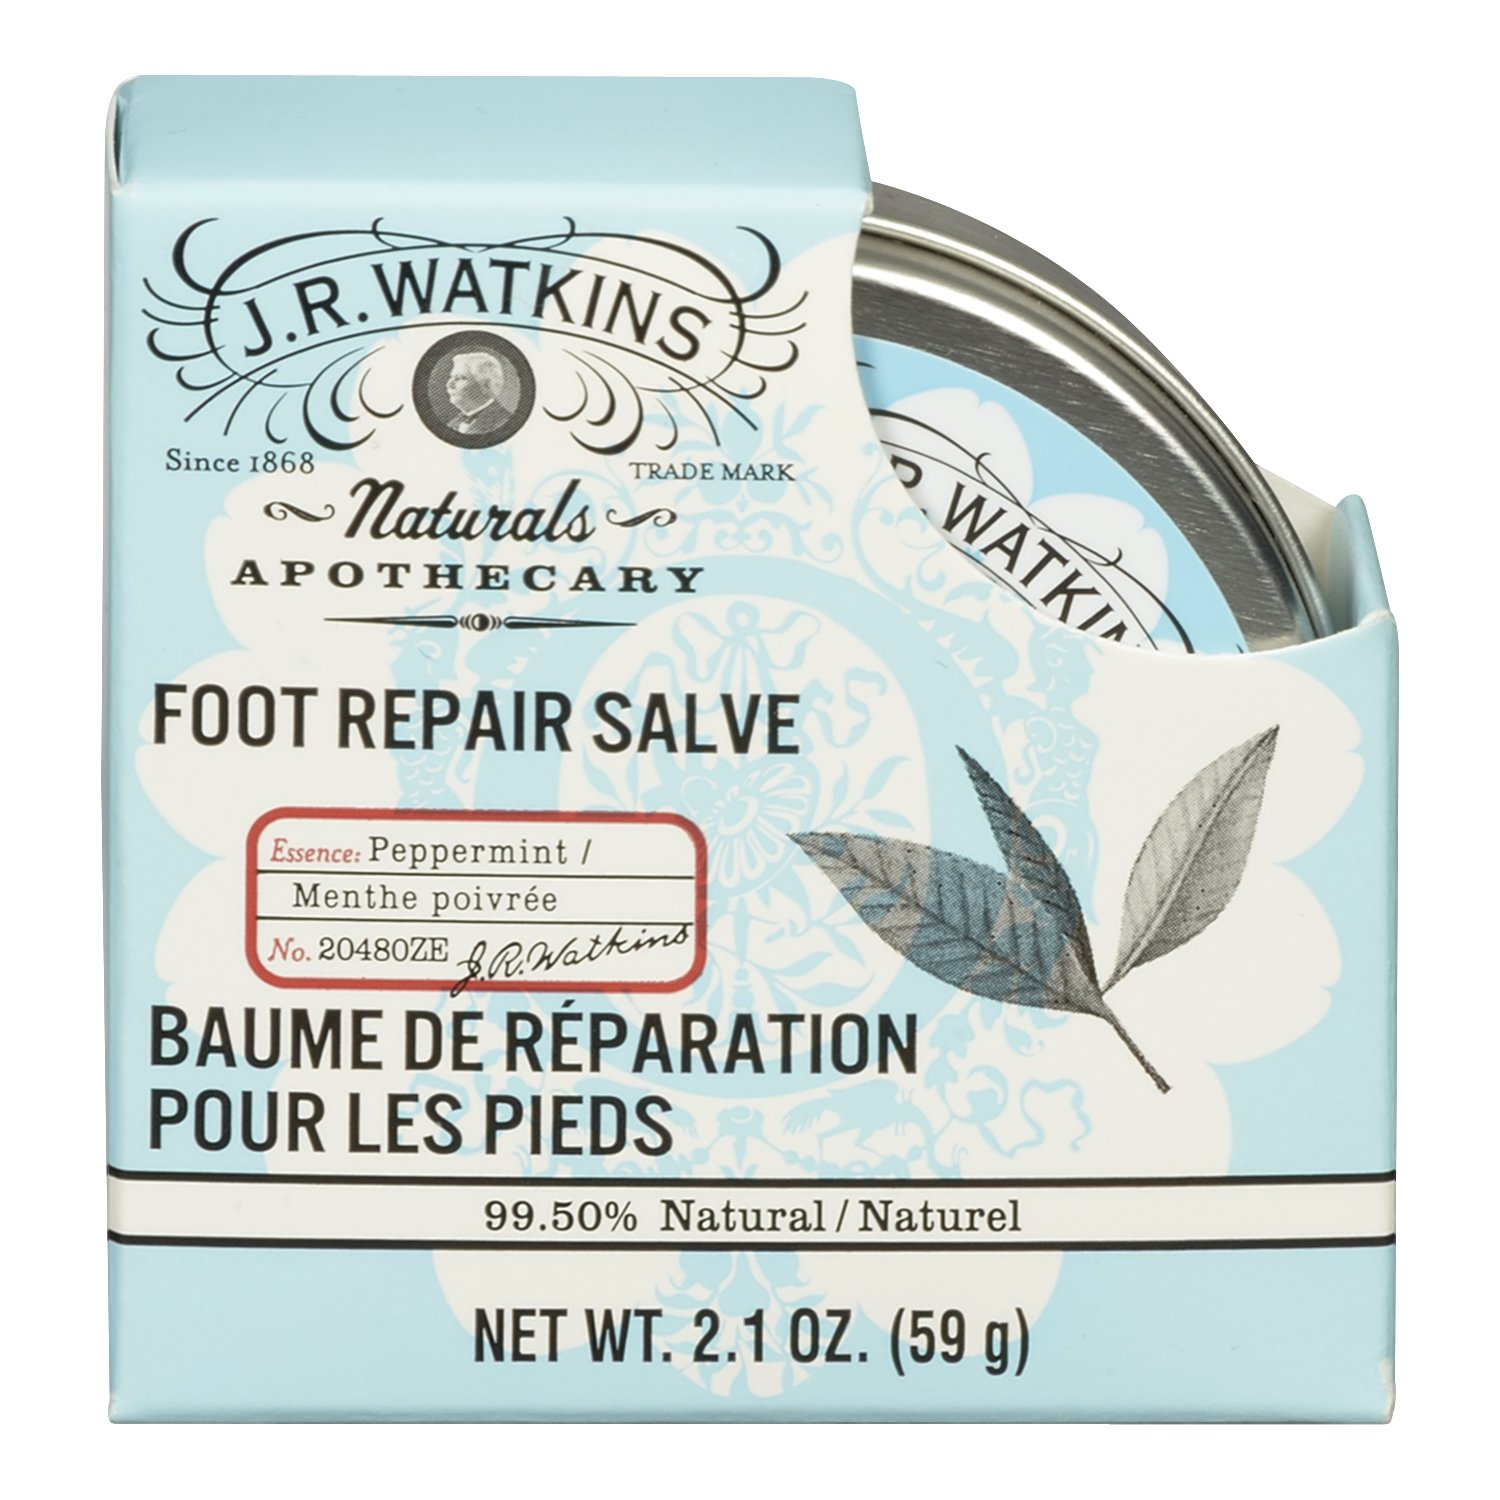 J.R. Watkins Foot Repair Salve, Peppermint, 2.1 Ounce 20480